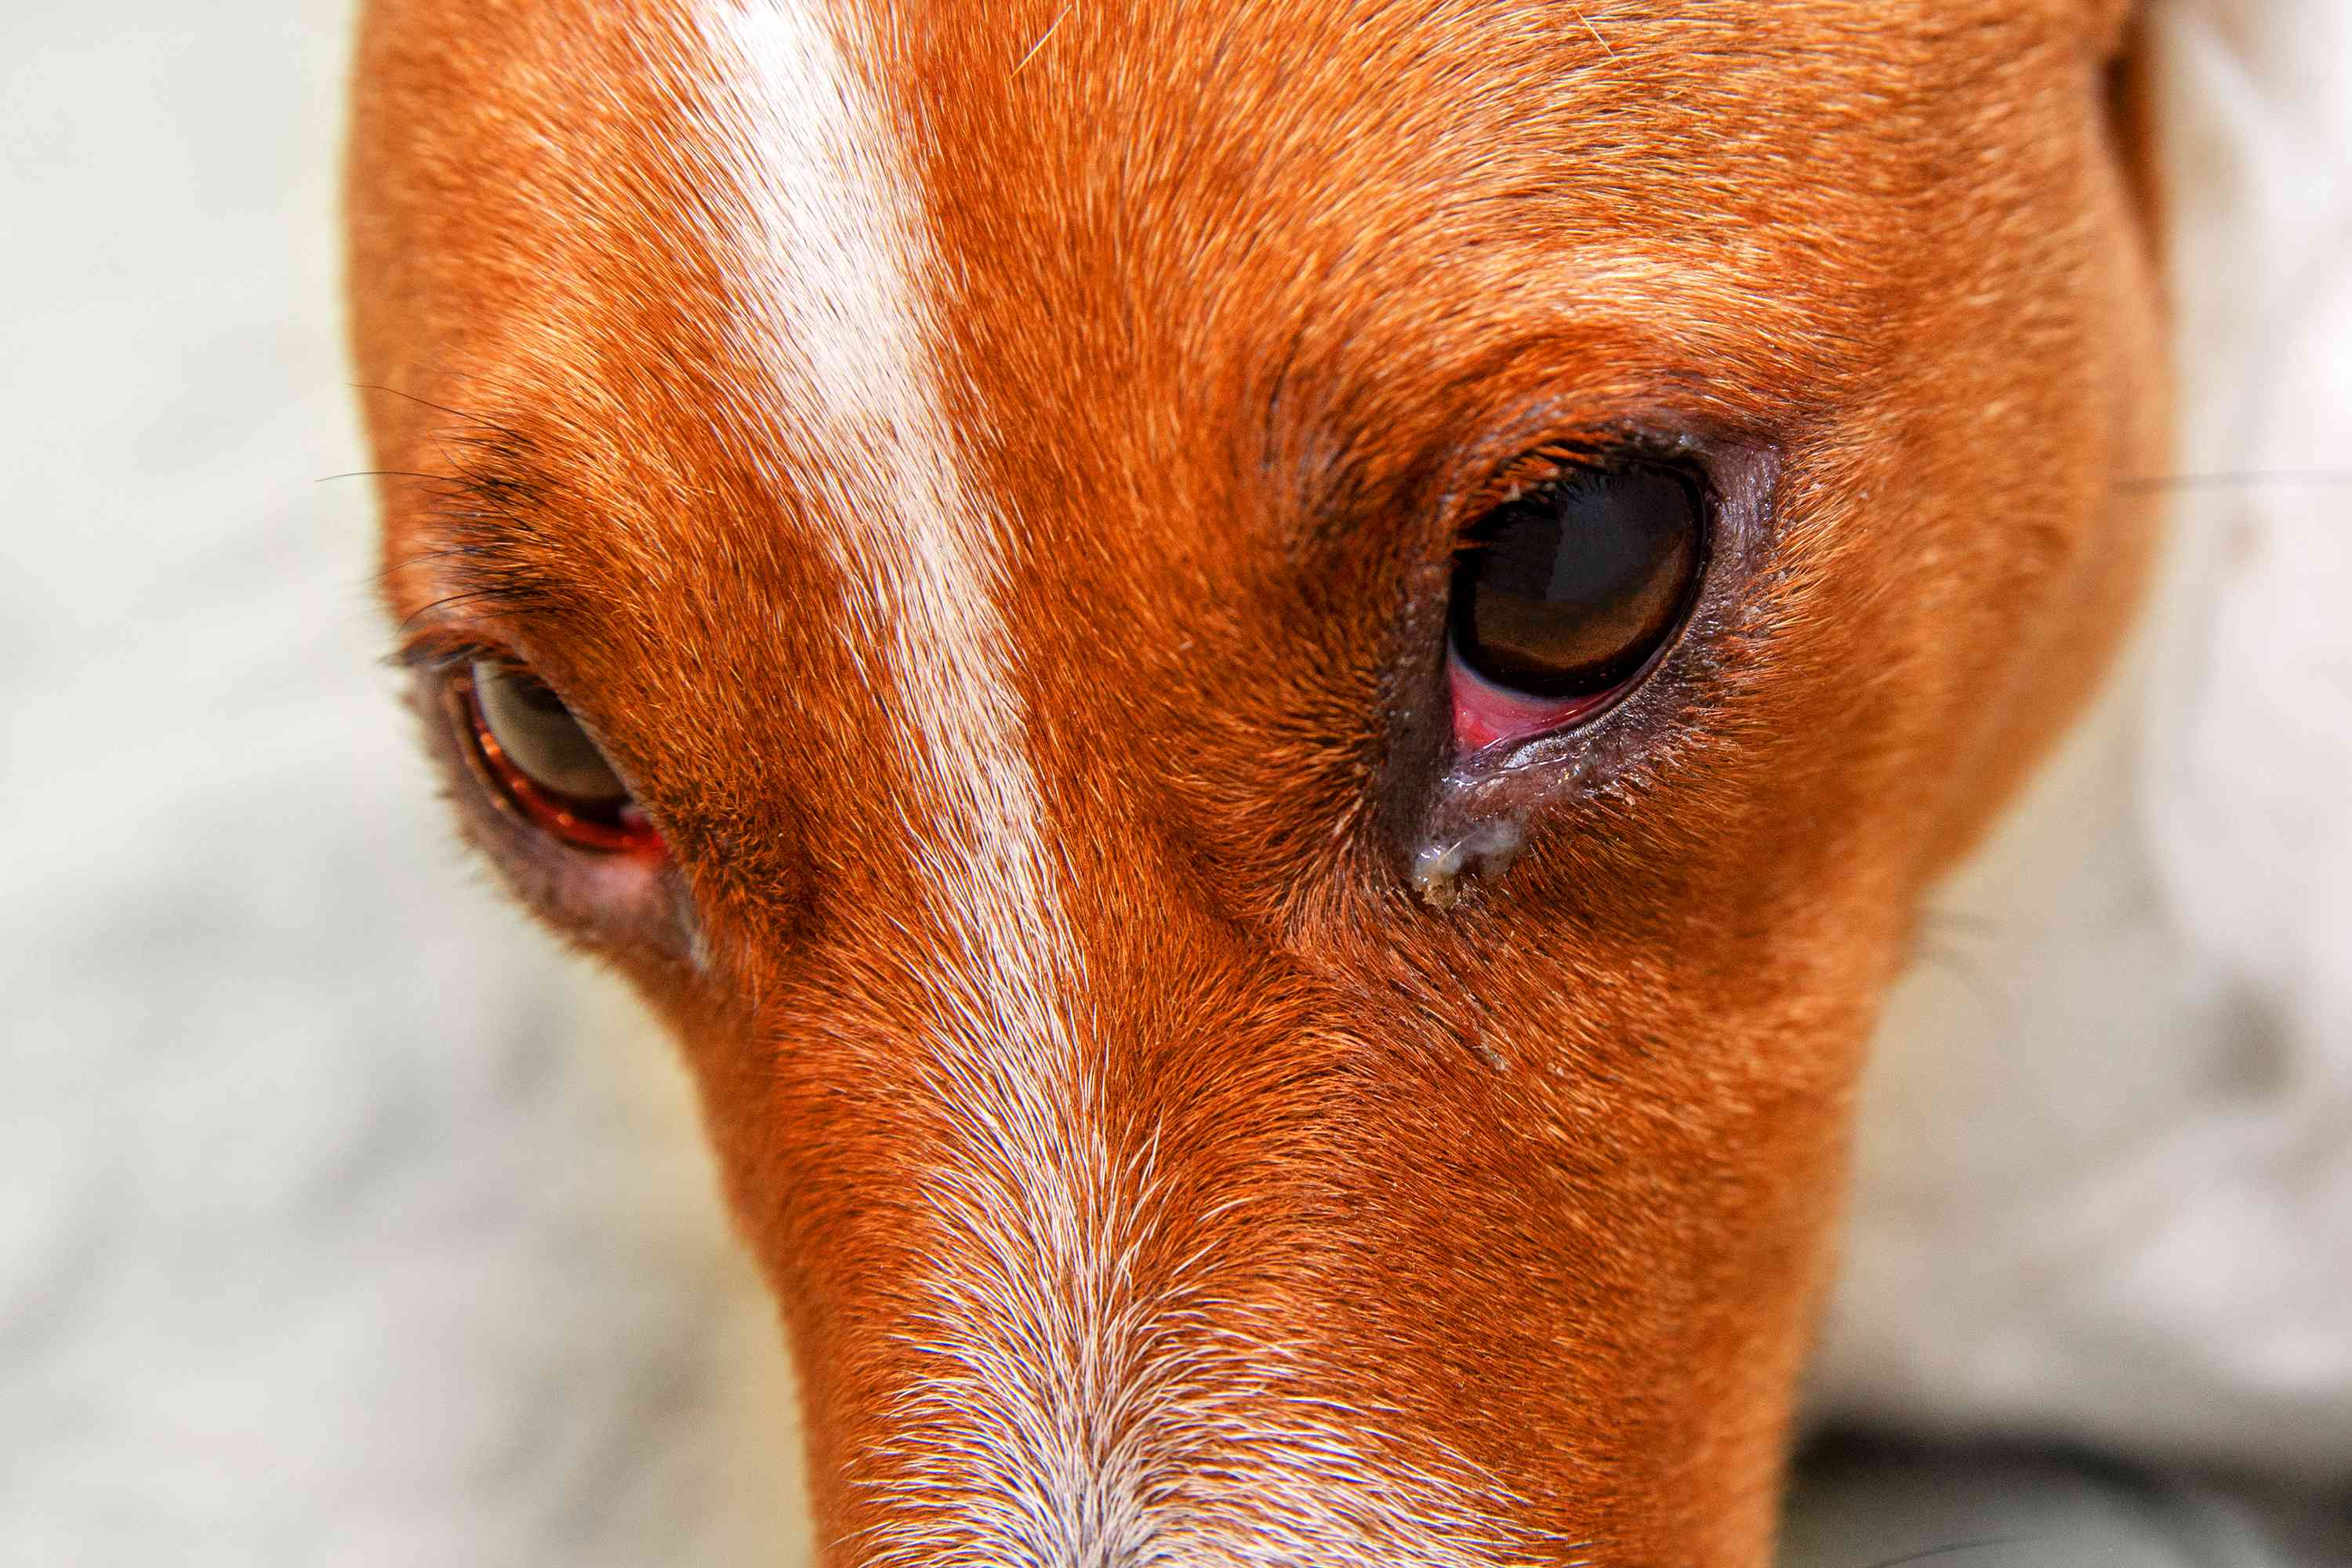 Close-up of dog face with clear/white eye boogers.